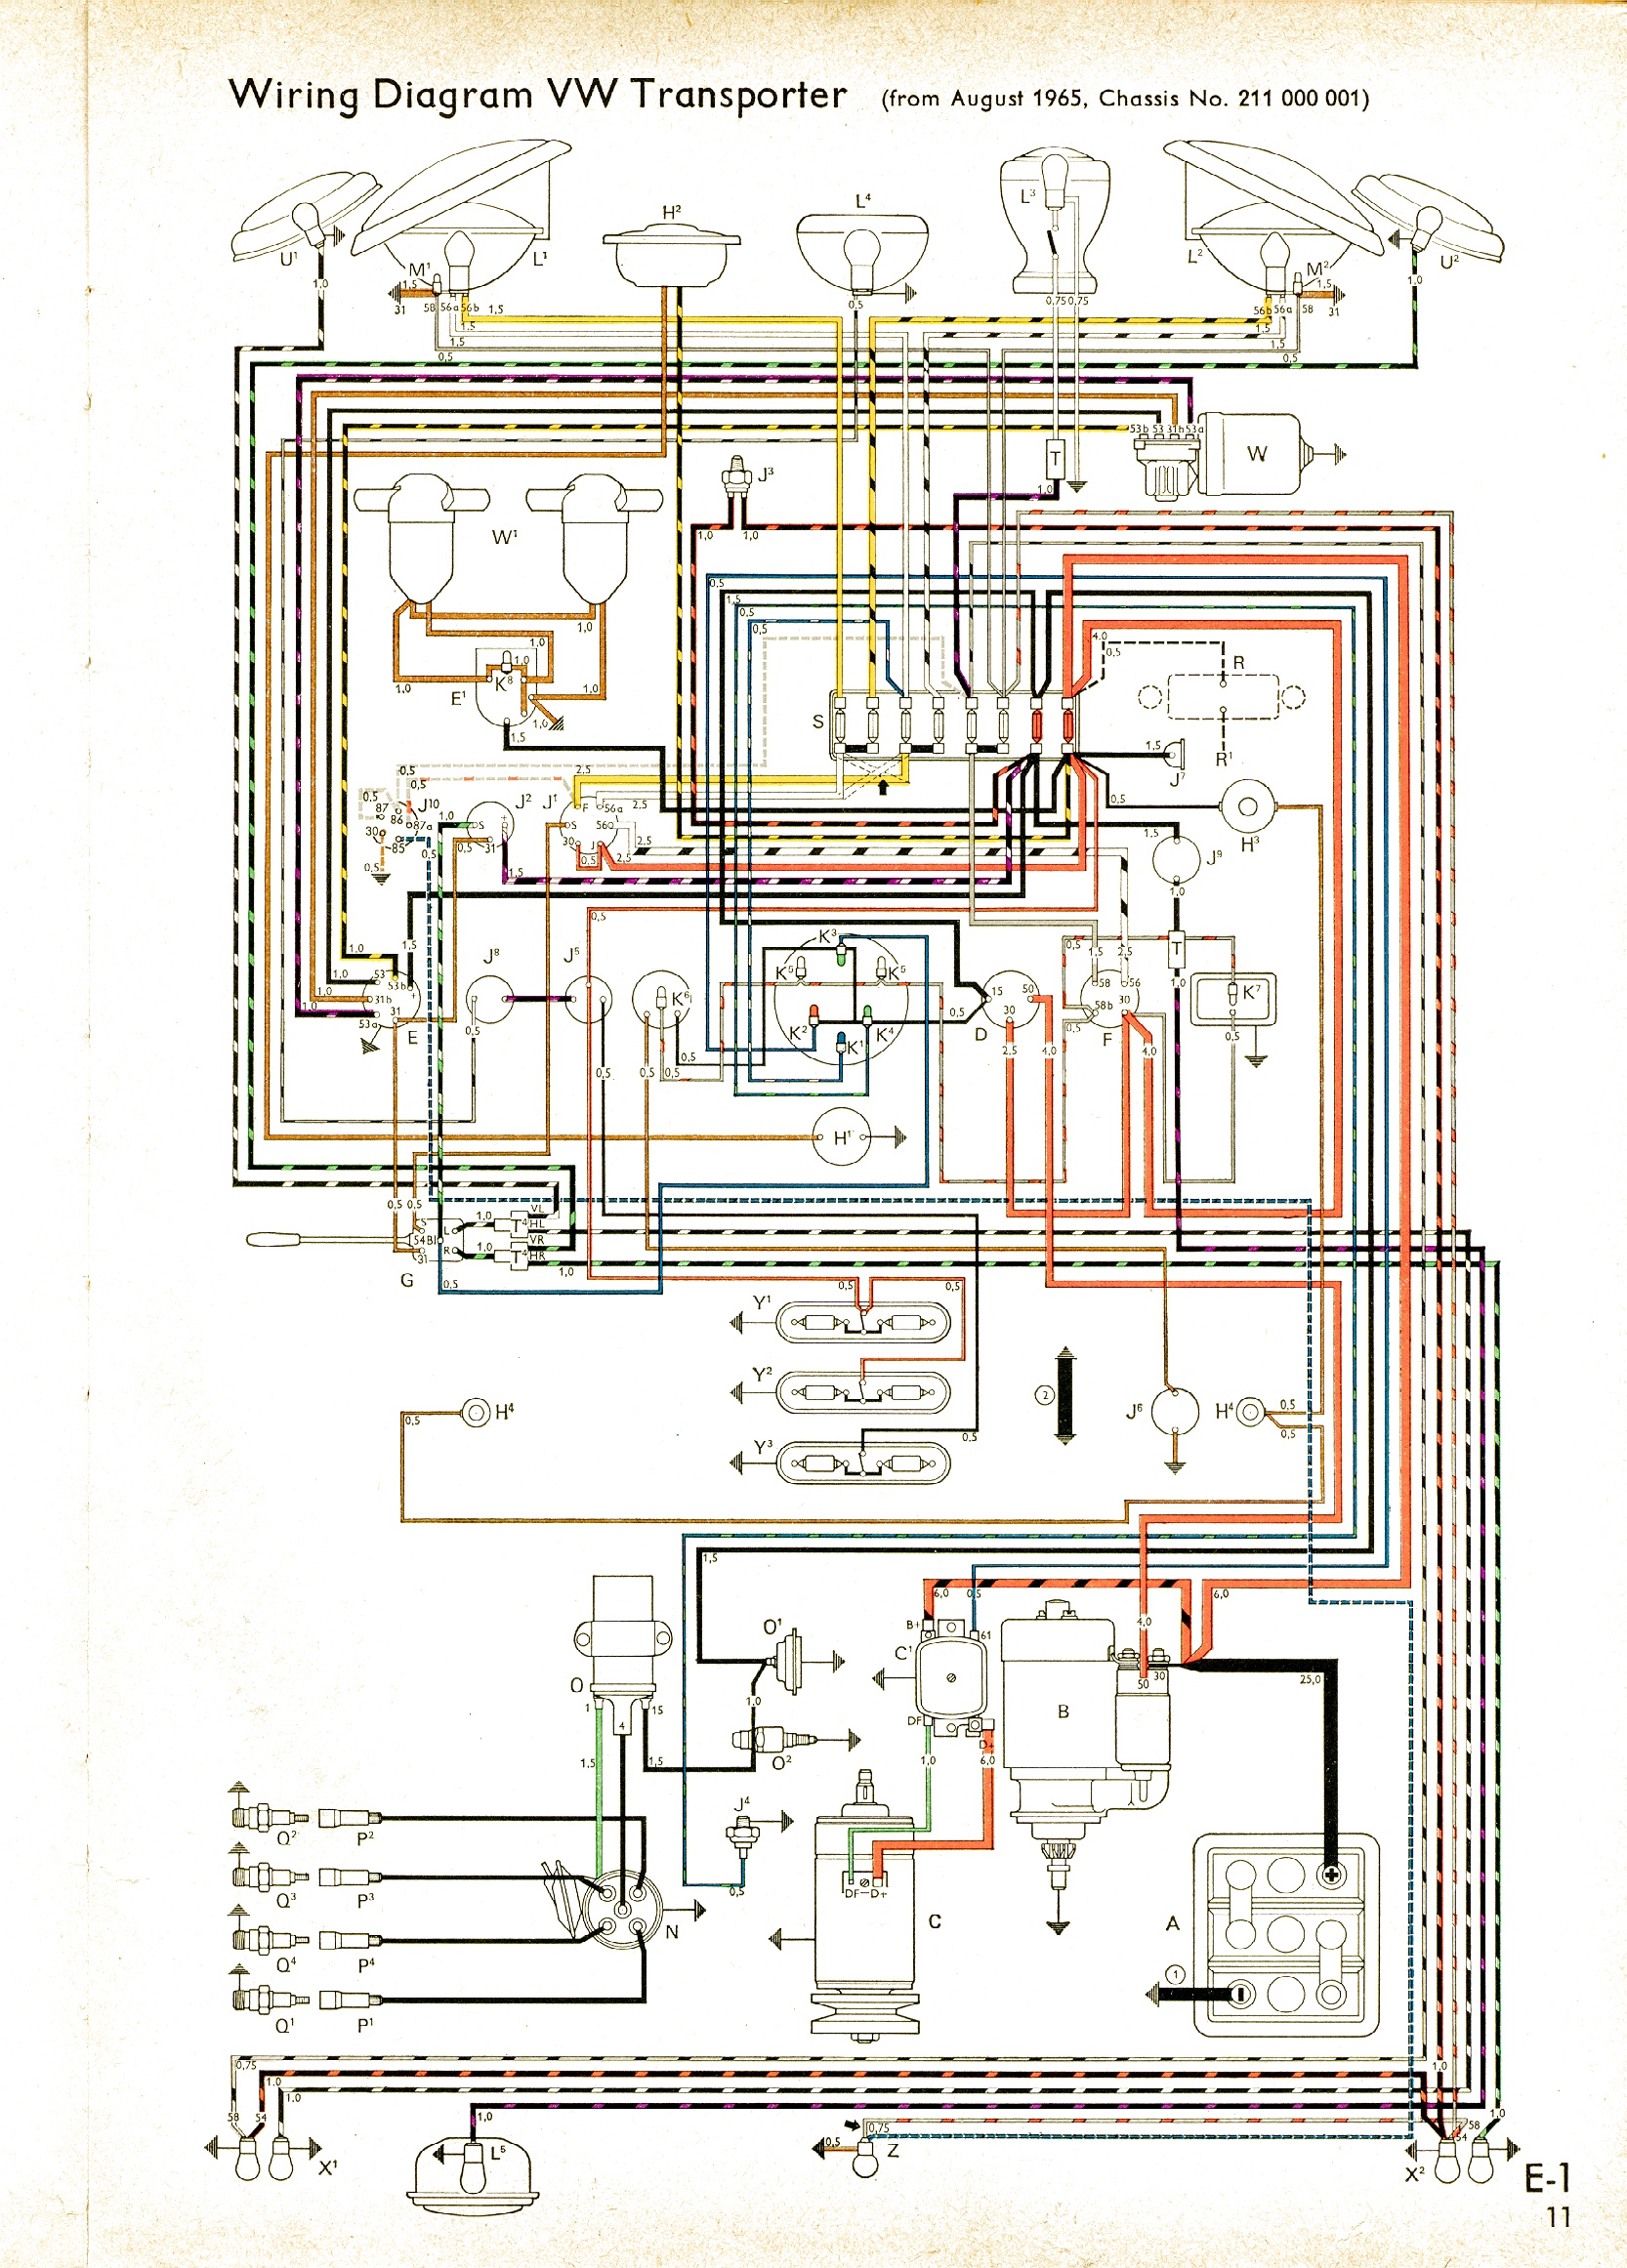 vw bus wiring diagram wiring library diagram h7 rh 20 sery tpk diningroom de bus wiring diagrams dodge dakota thomas c2 school bus wiring diagrams